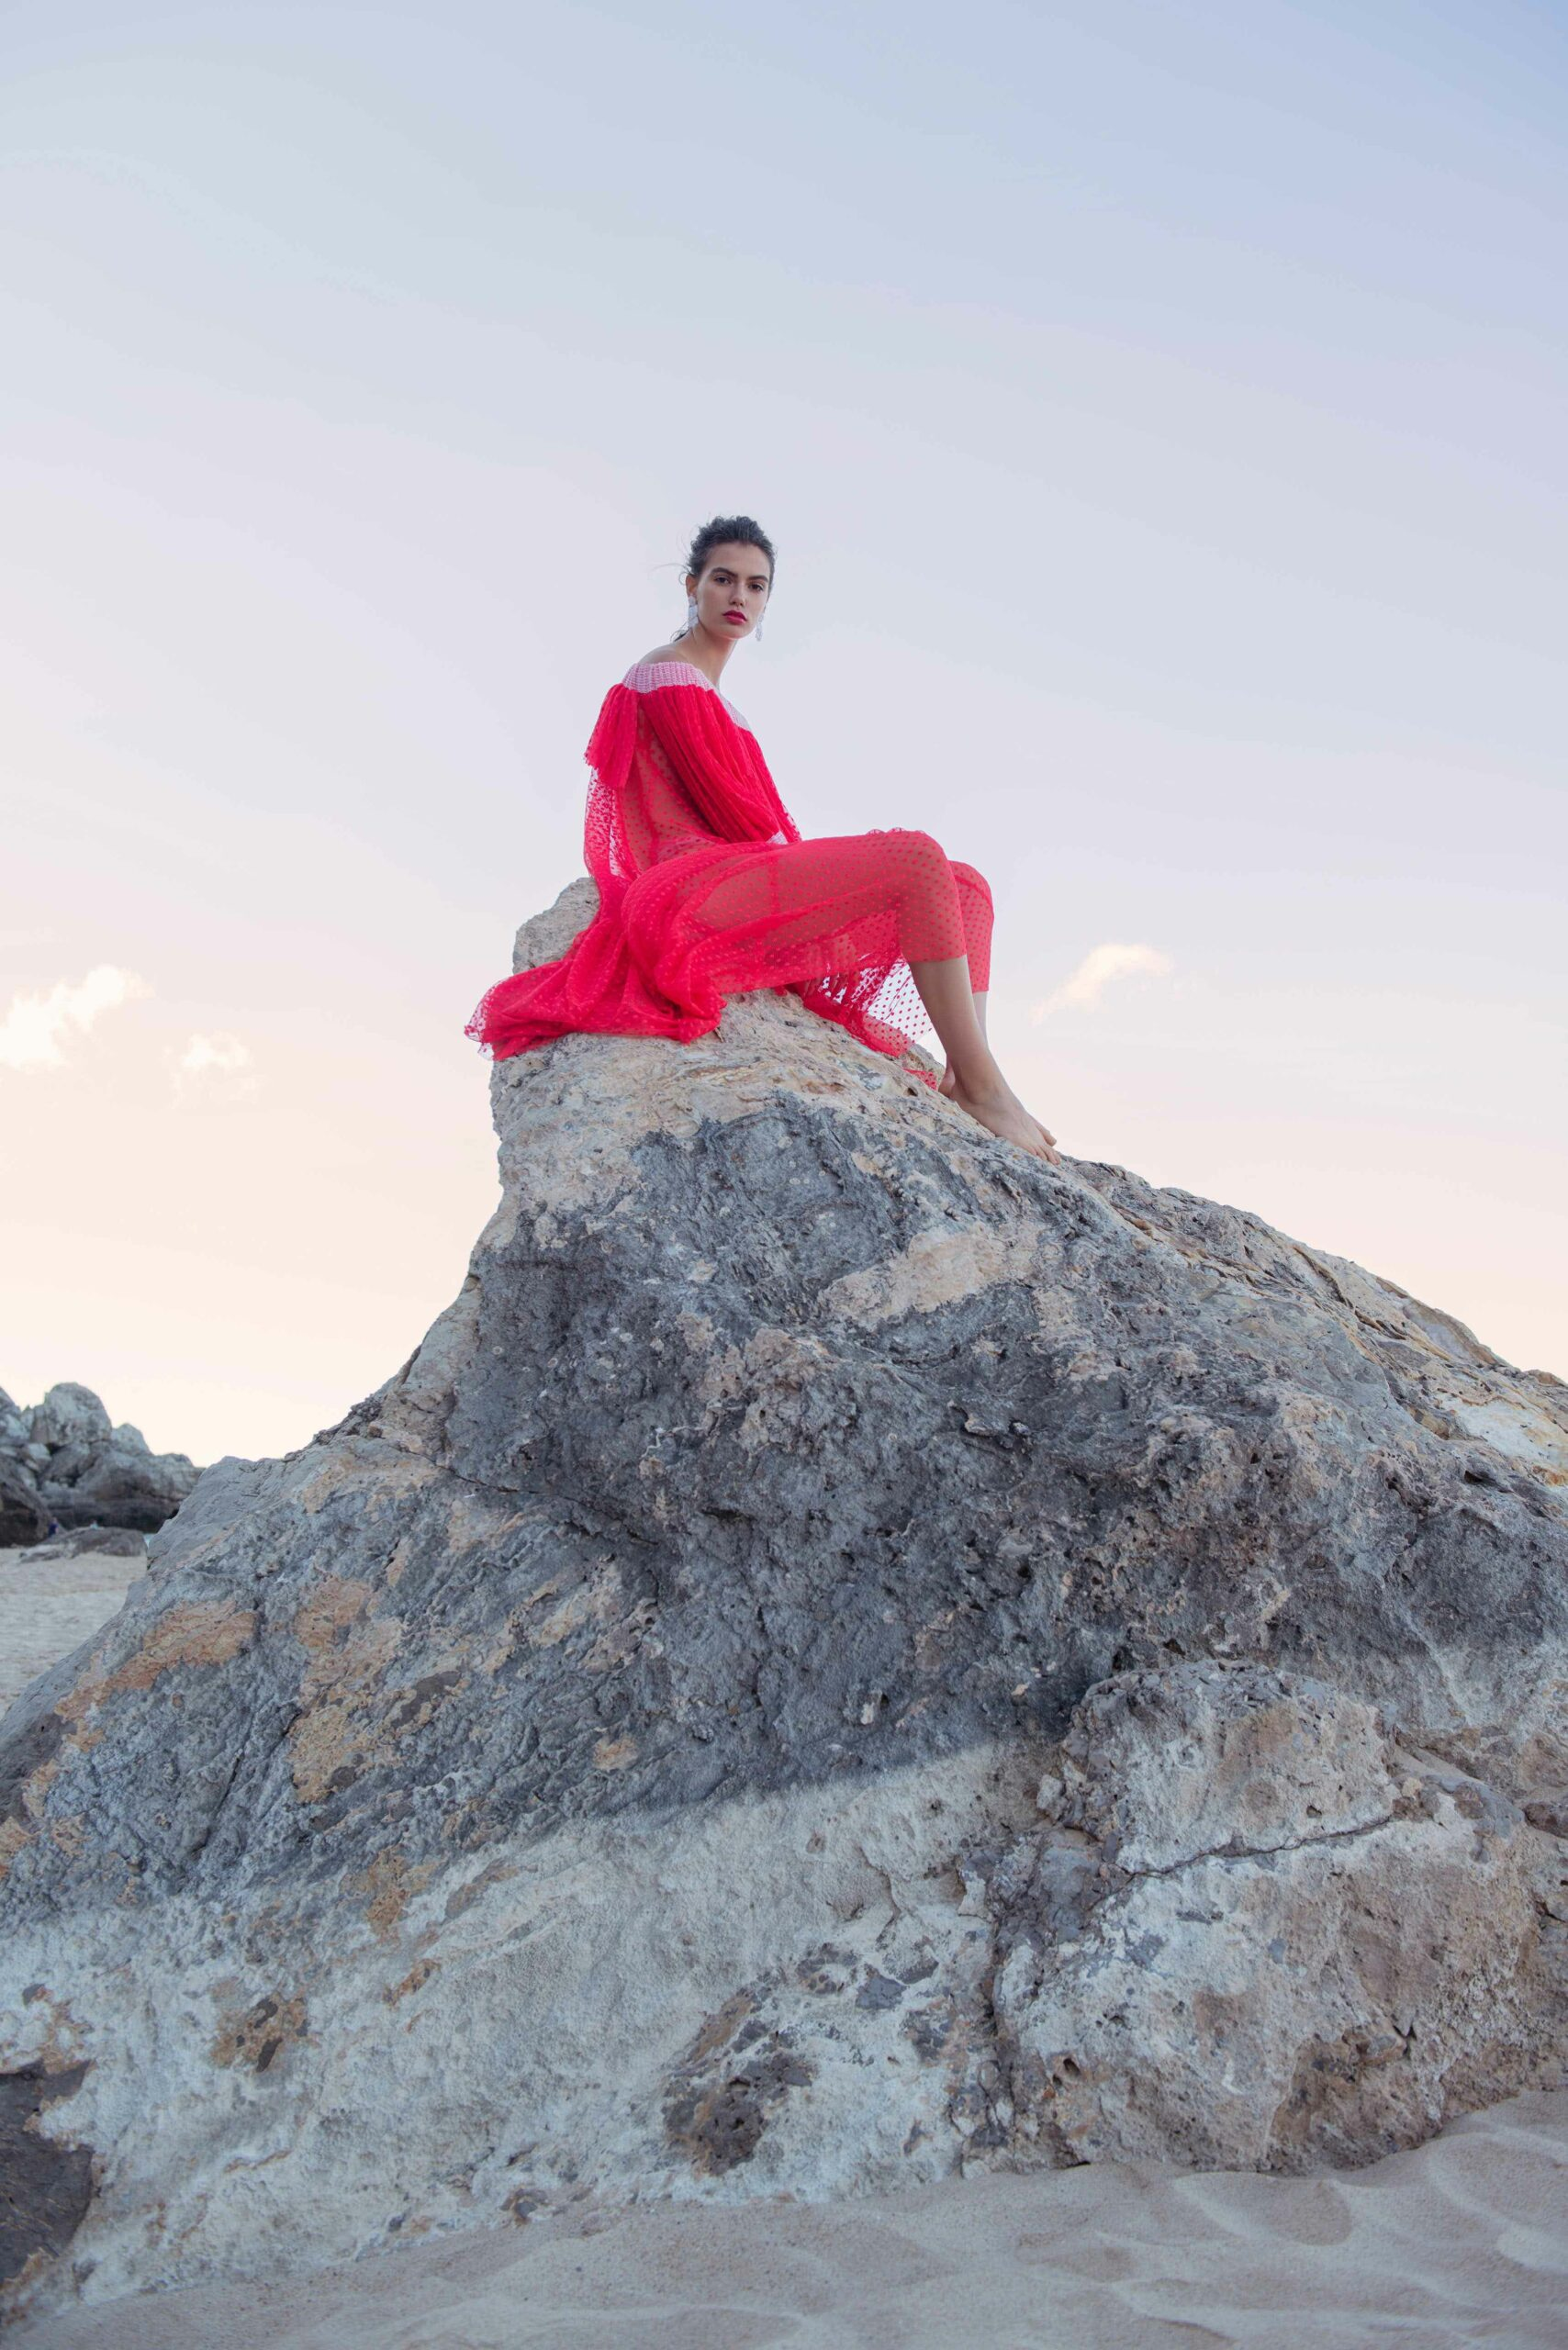 fashion photography london- women in red dress